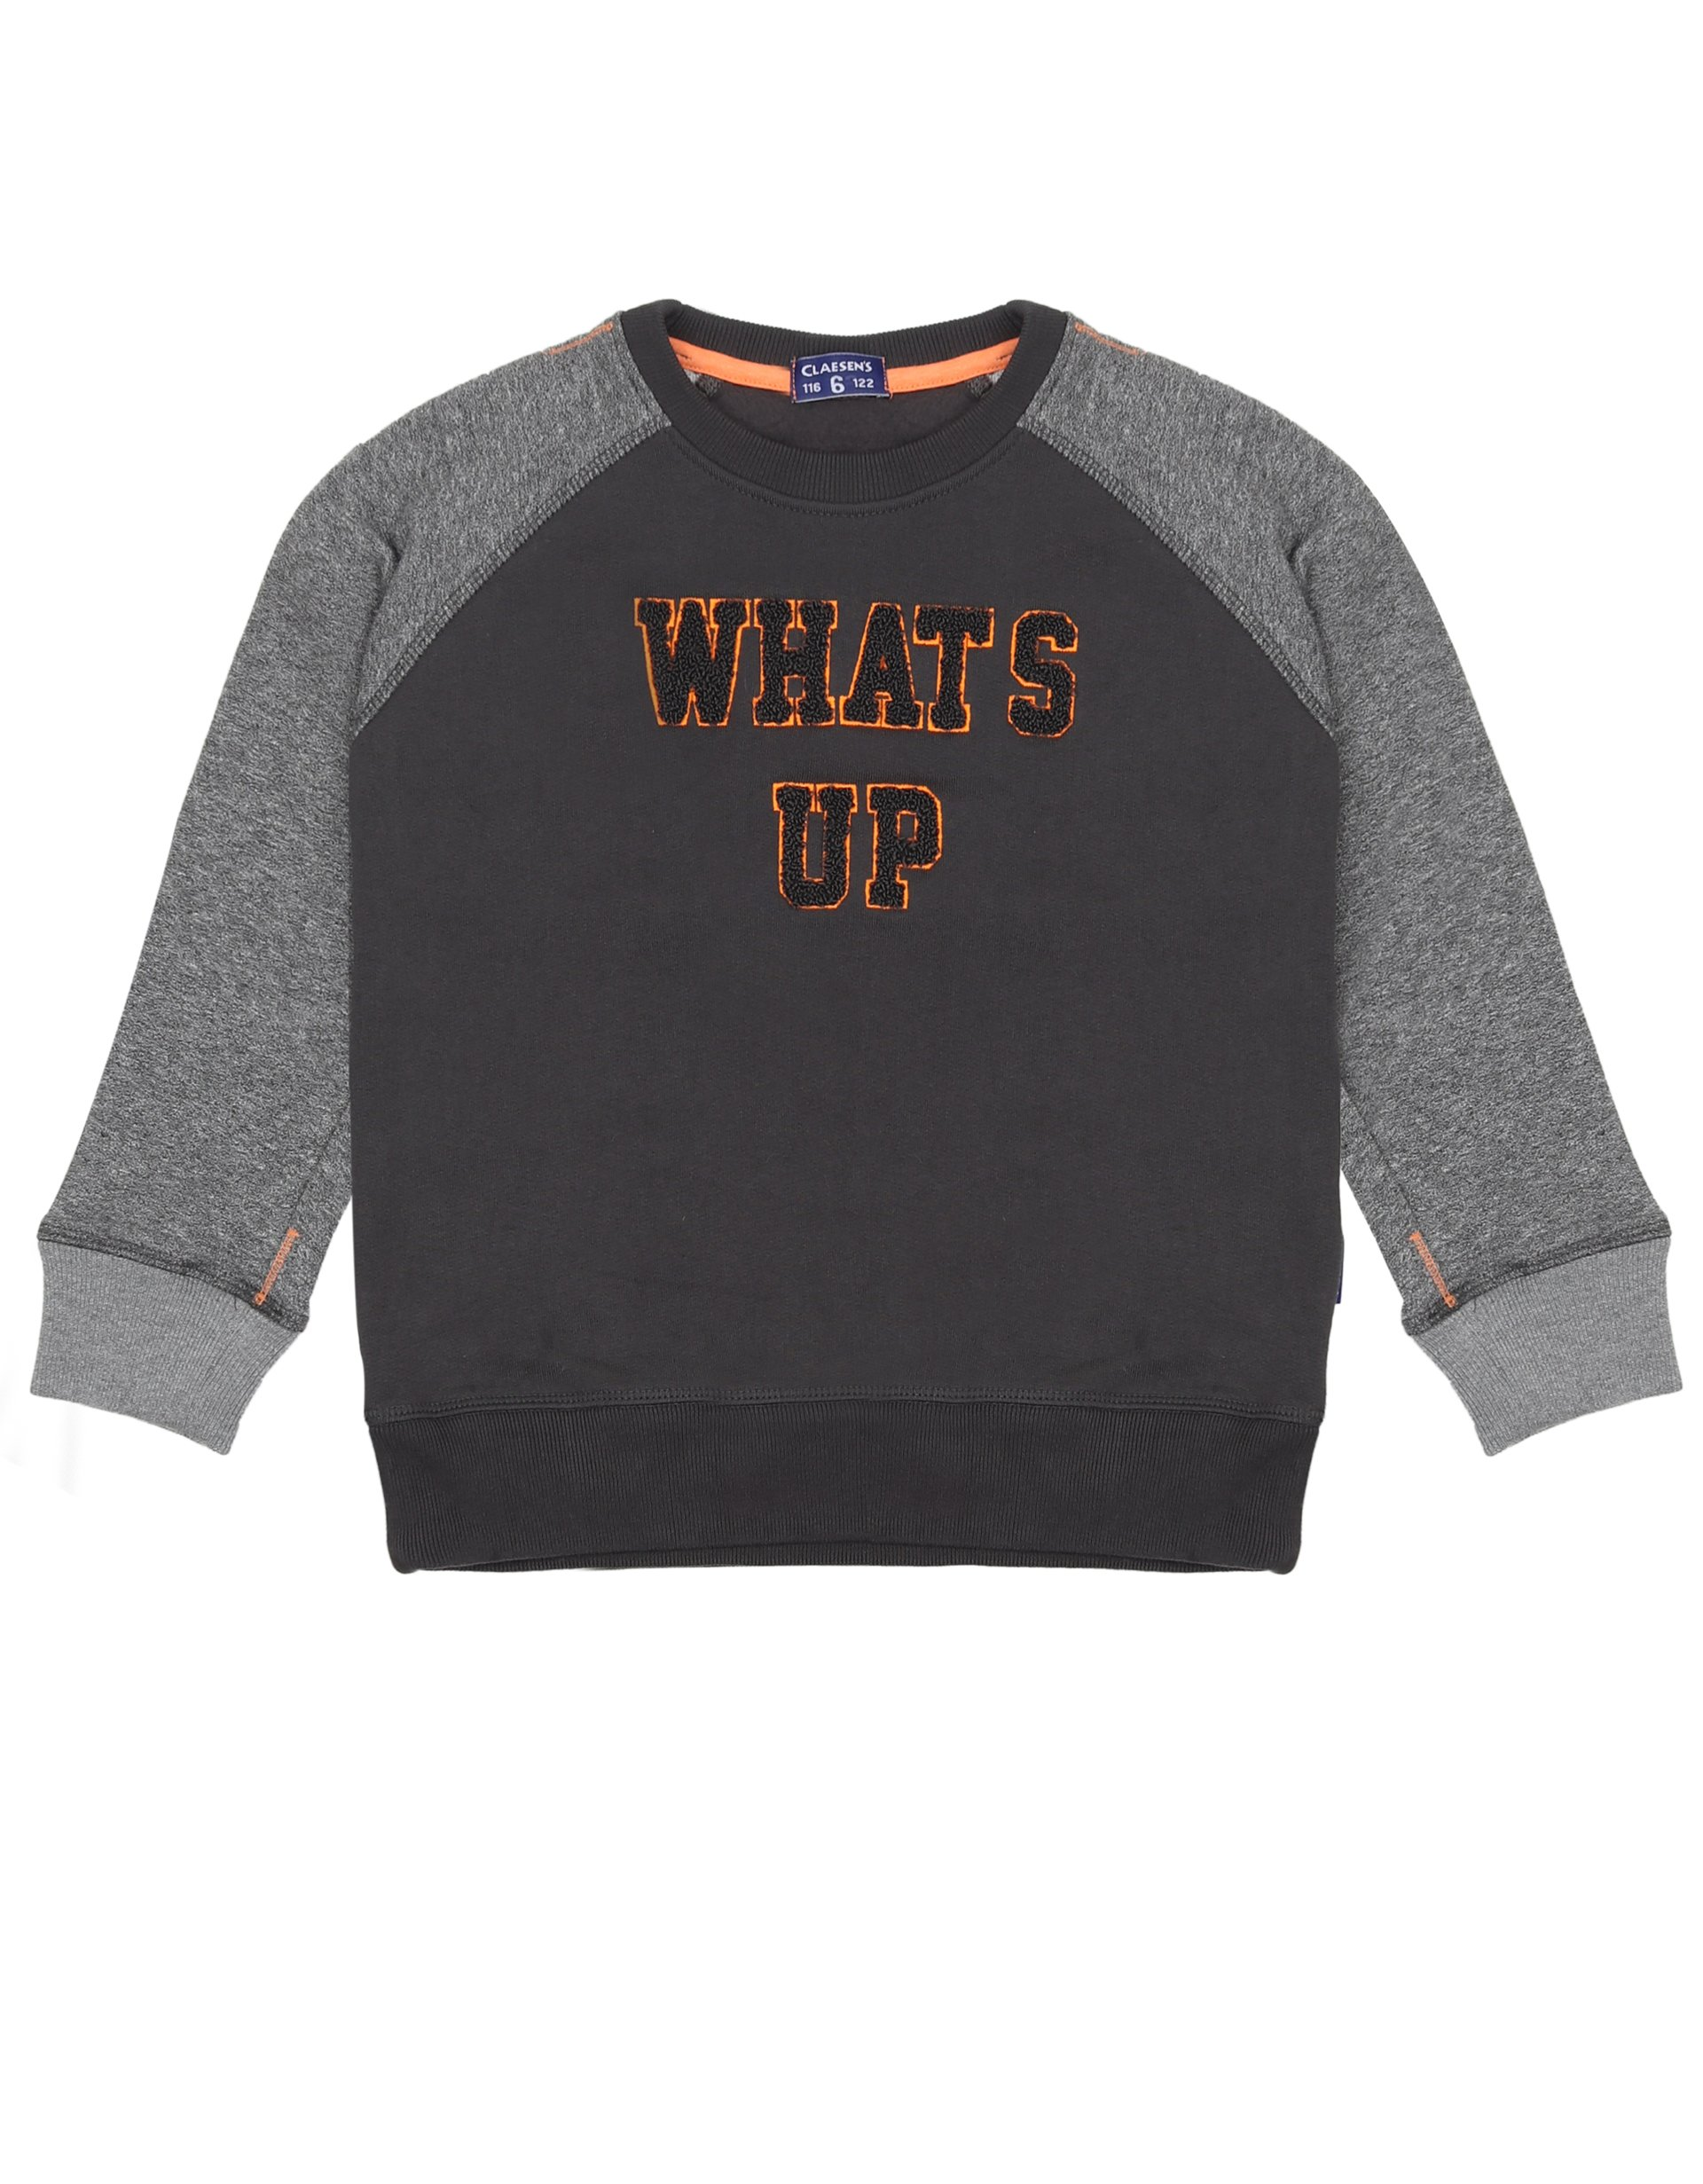 Boys Raglan Sweater